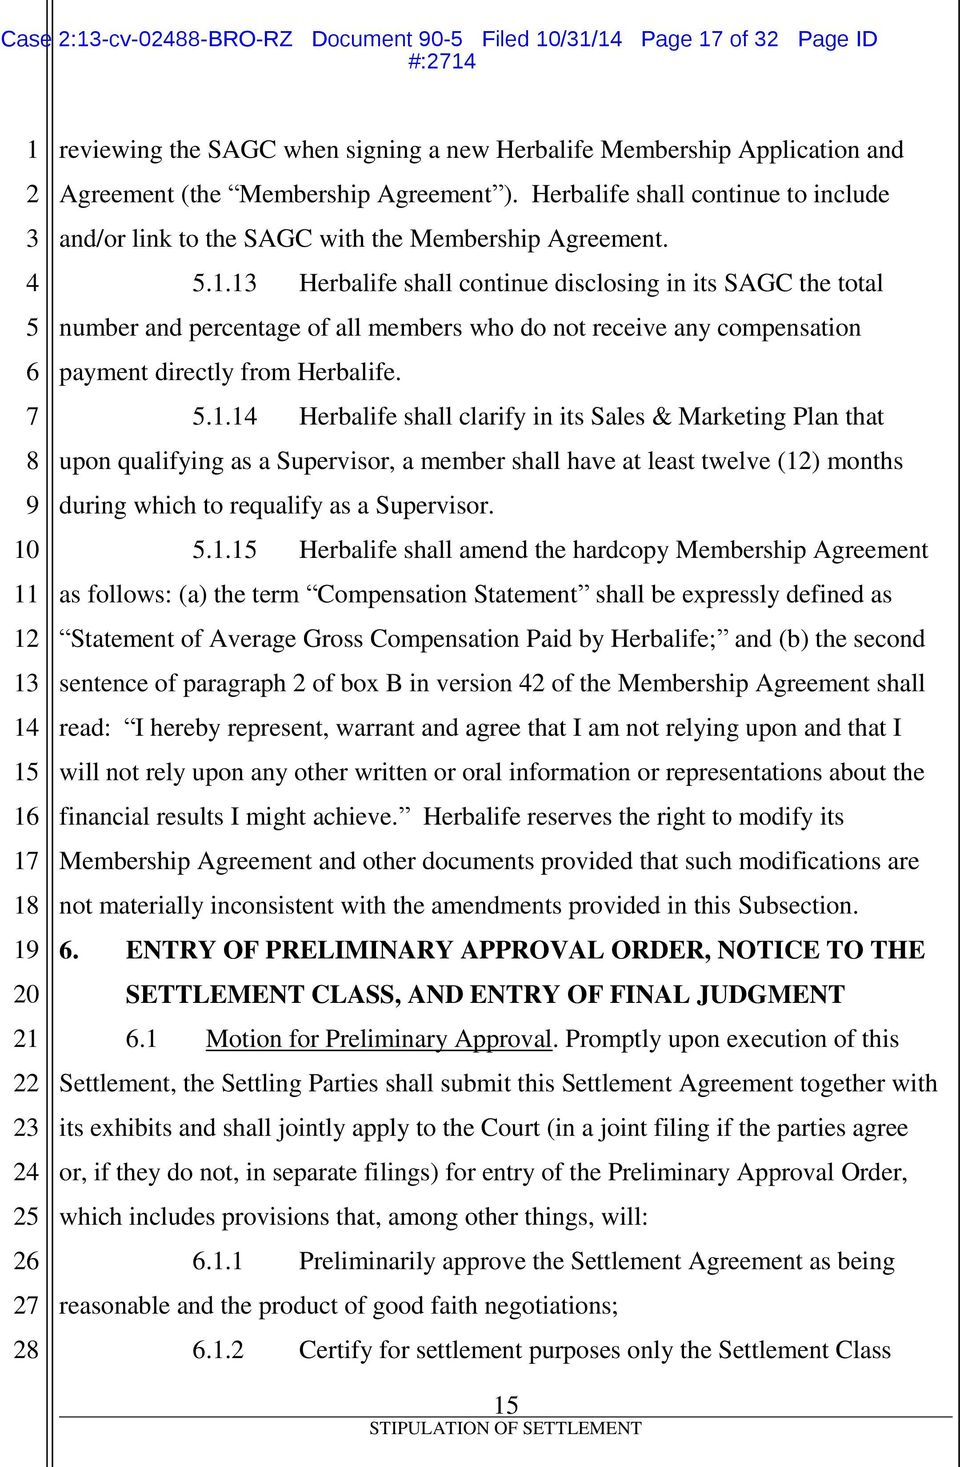 13 Herbalife shall continue disclosing in its SAGC the total number and percentage of all members who do not receive any compensation payment directly from Herbalife. 5.1.14 Herbalife shall clarify in its Sales & Marketing Plan that upon qualifying as a Supervisor, a member shall have at least twelve (12) months during which to requalify as a Supervisor.